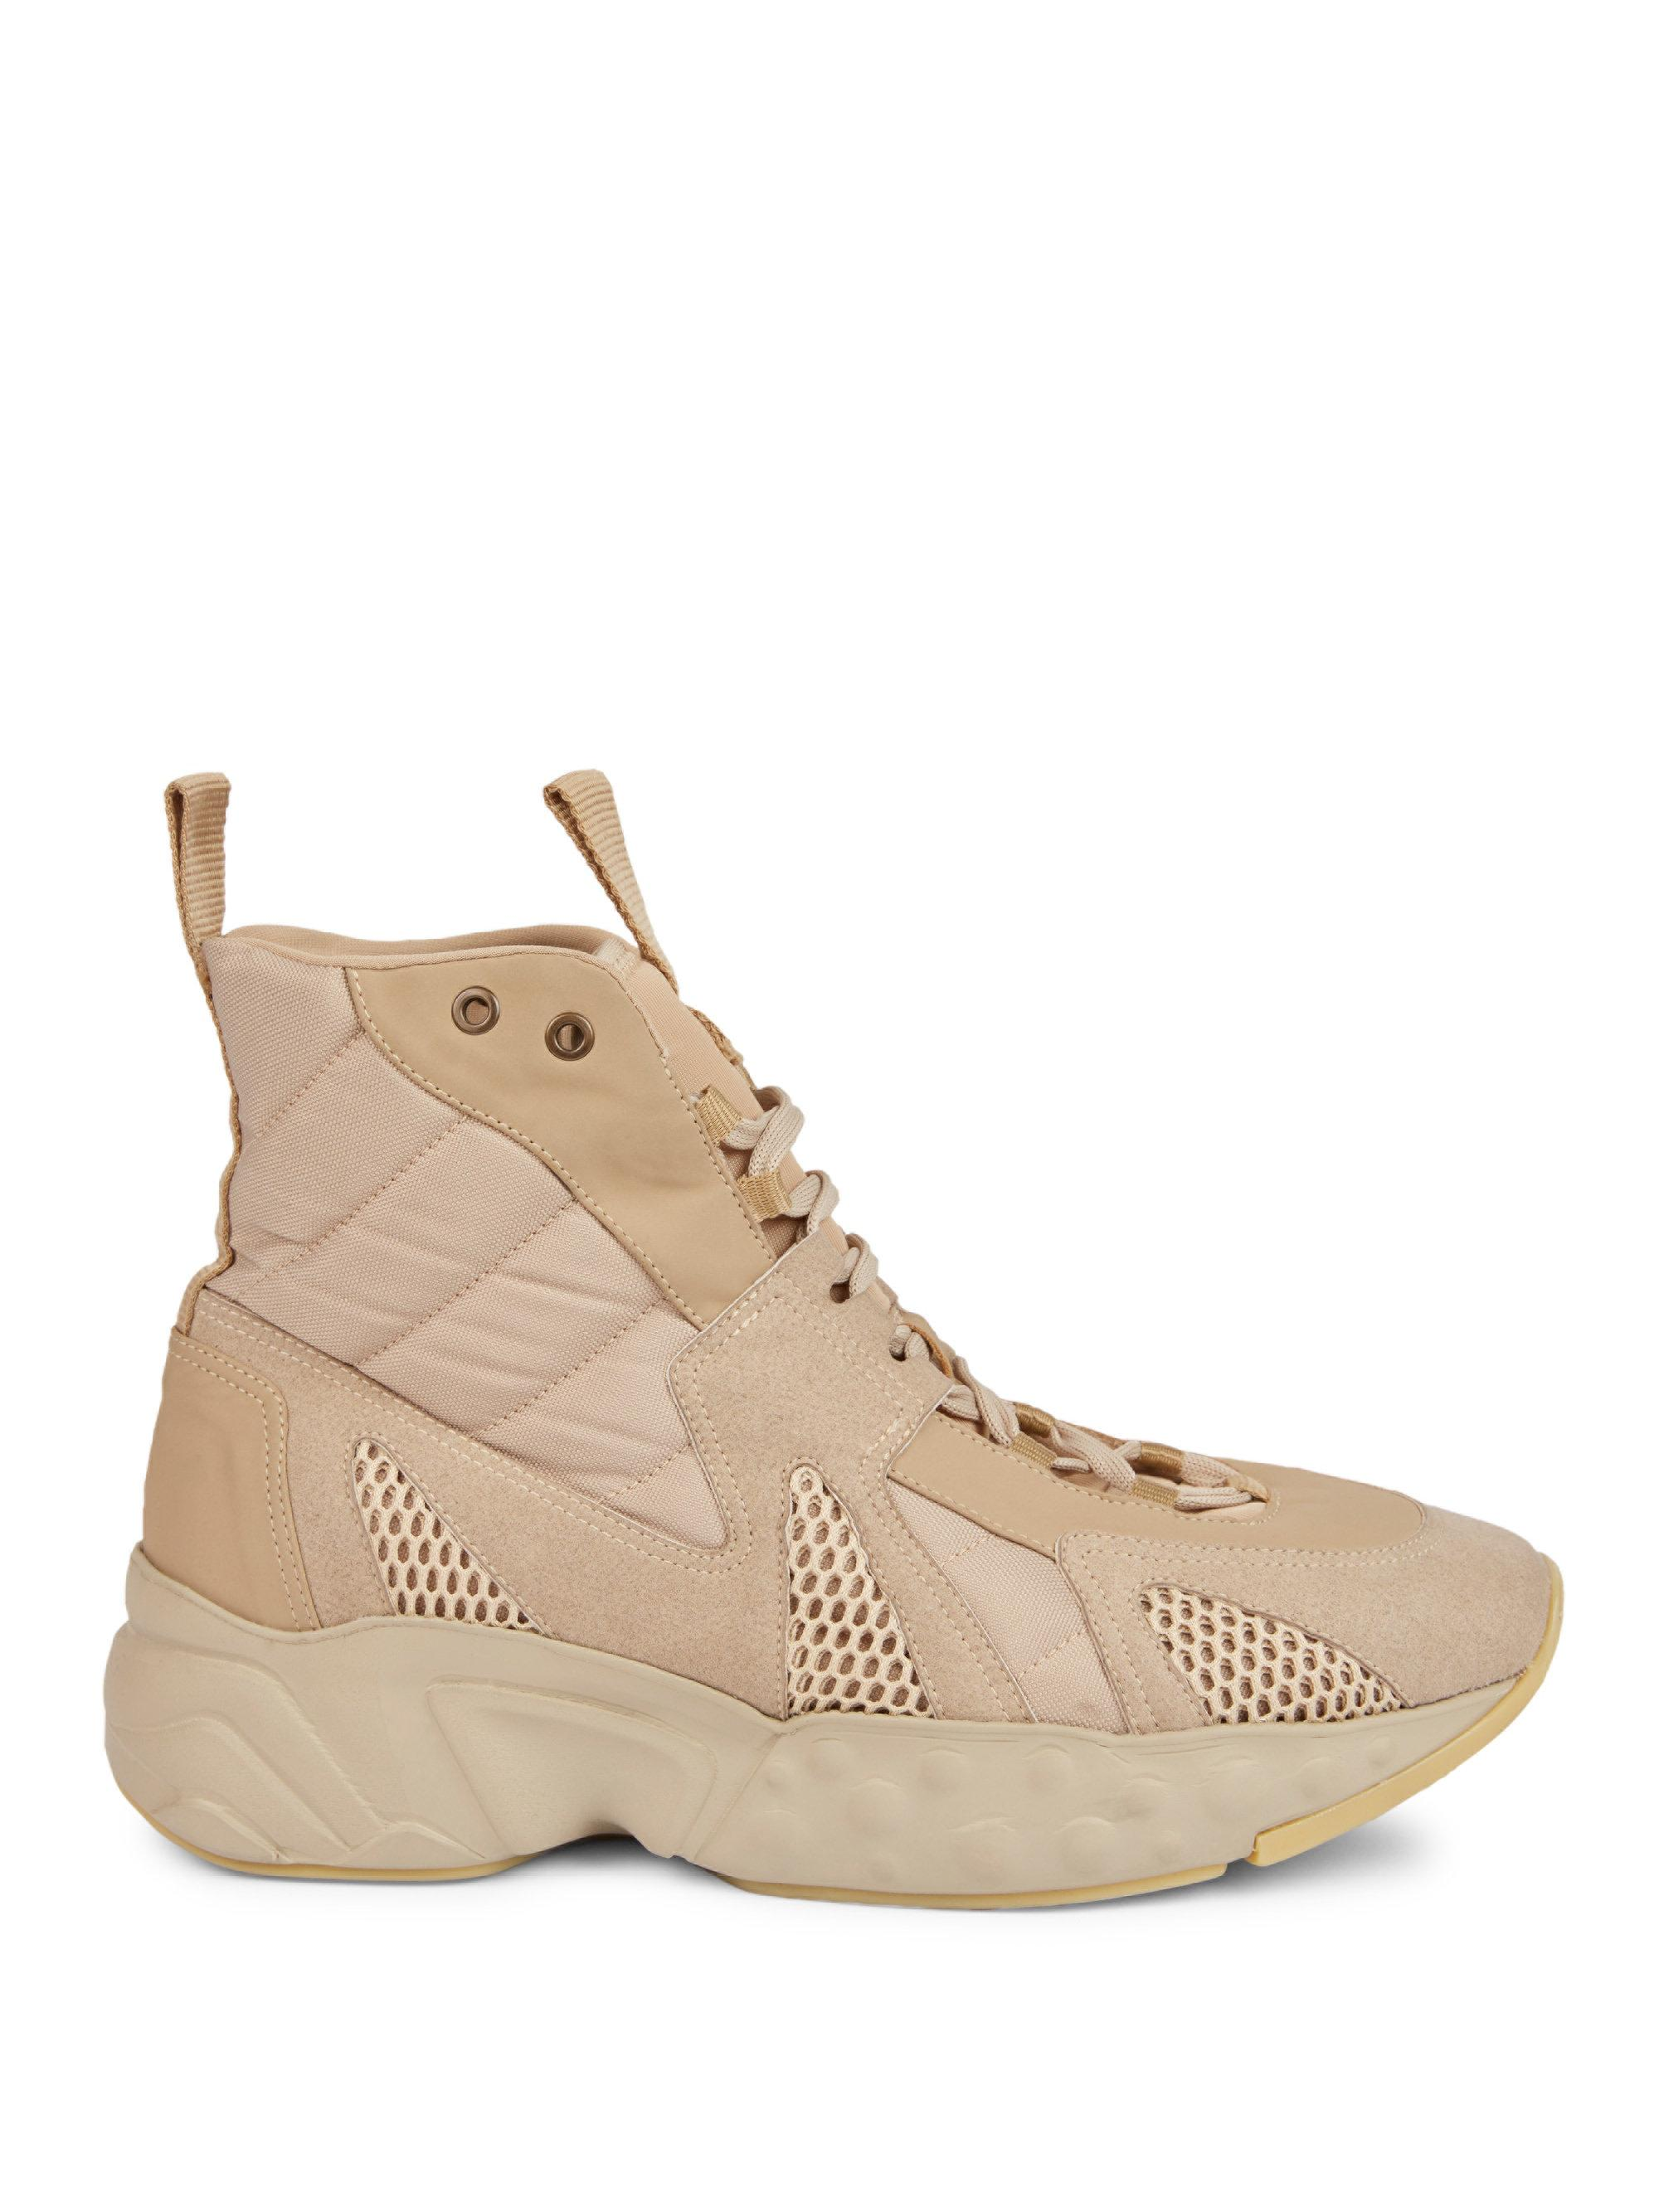 Top 5 High End Chunky Sneakers of the Year 2017 chunky sneakers Top 5 High End Chunky Sneakers of the Year 2017 acne beige Sami Quilt Mesh Sneakers